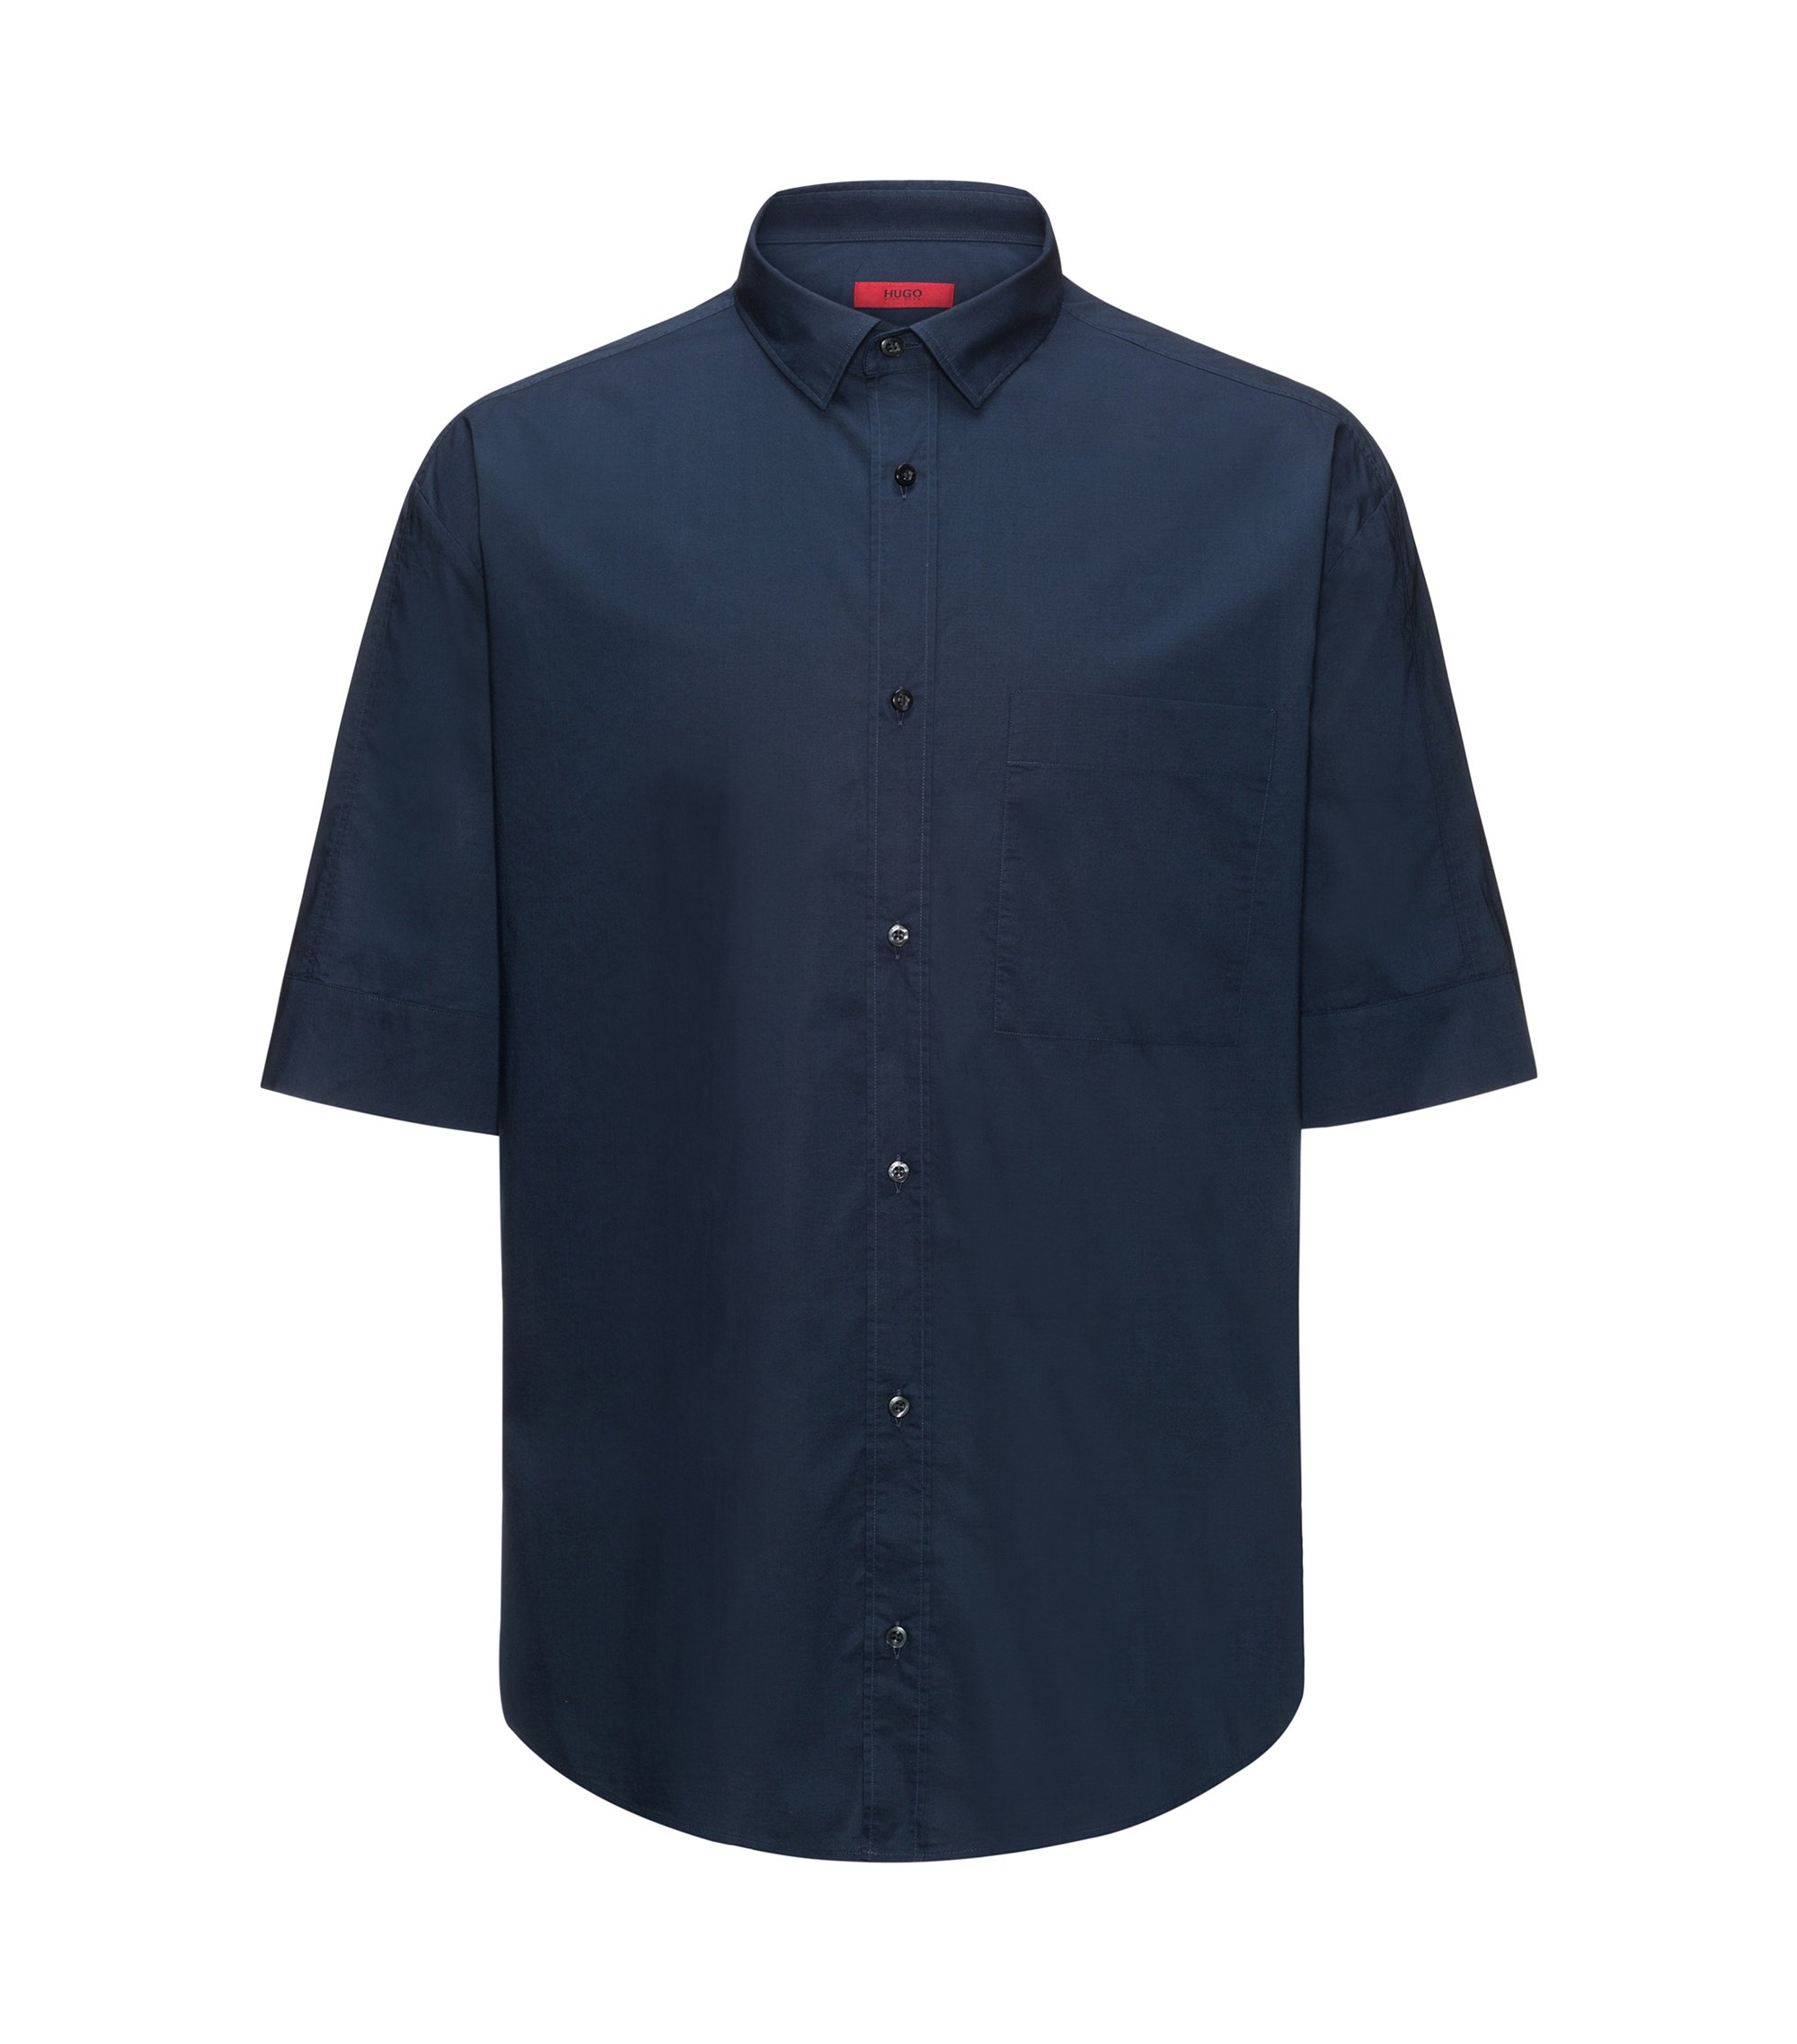 Cotton Sport Shirt, Oversize Fit | Eynold, Dark Blue